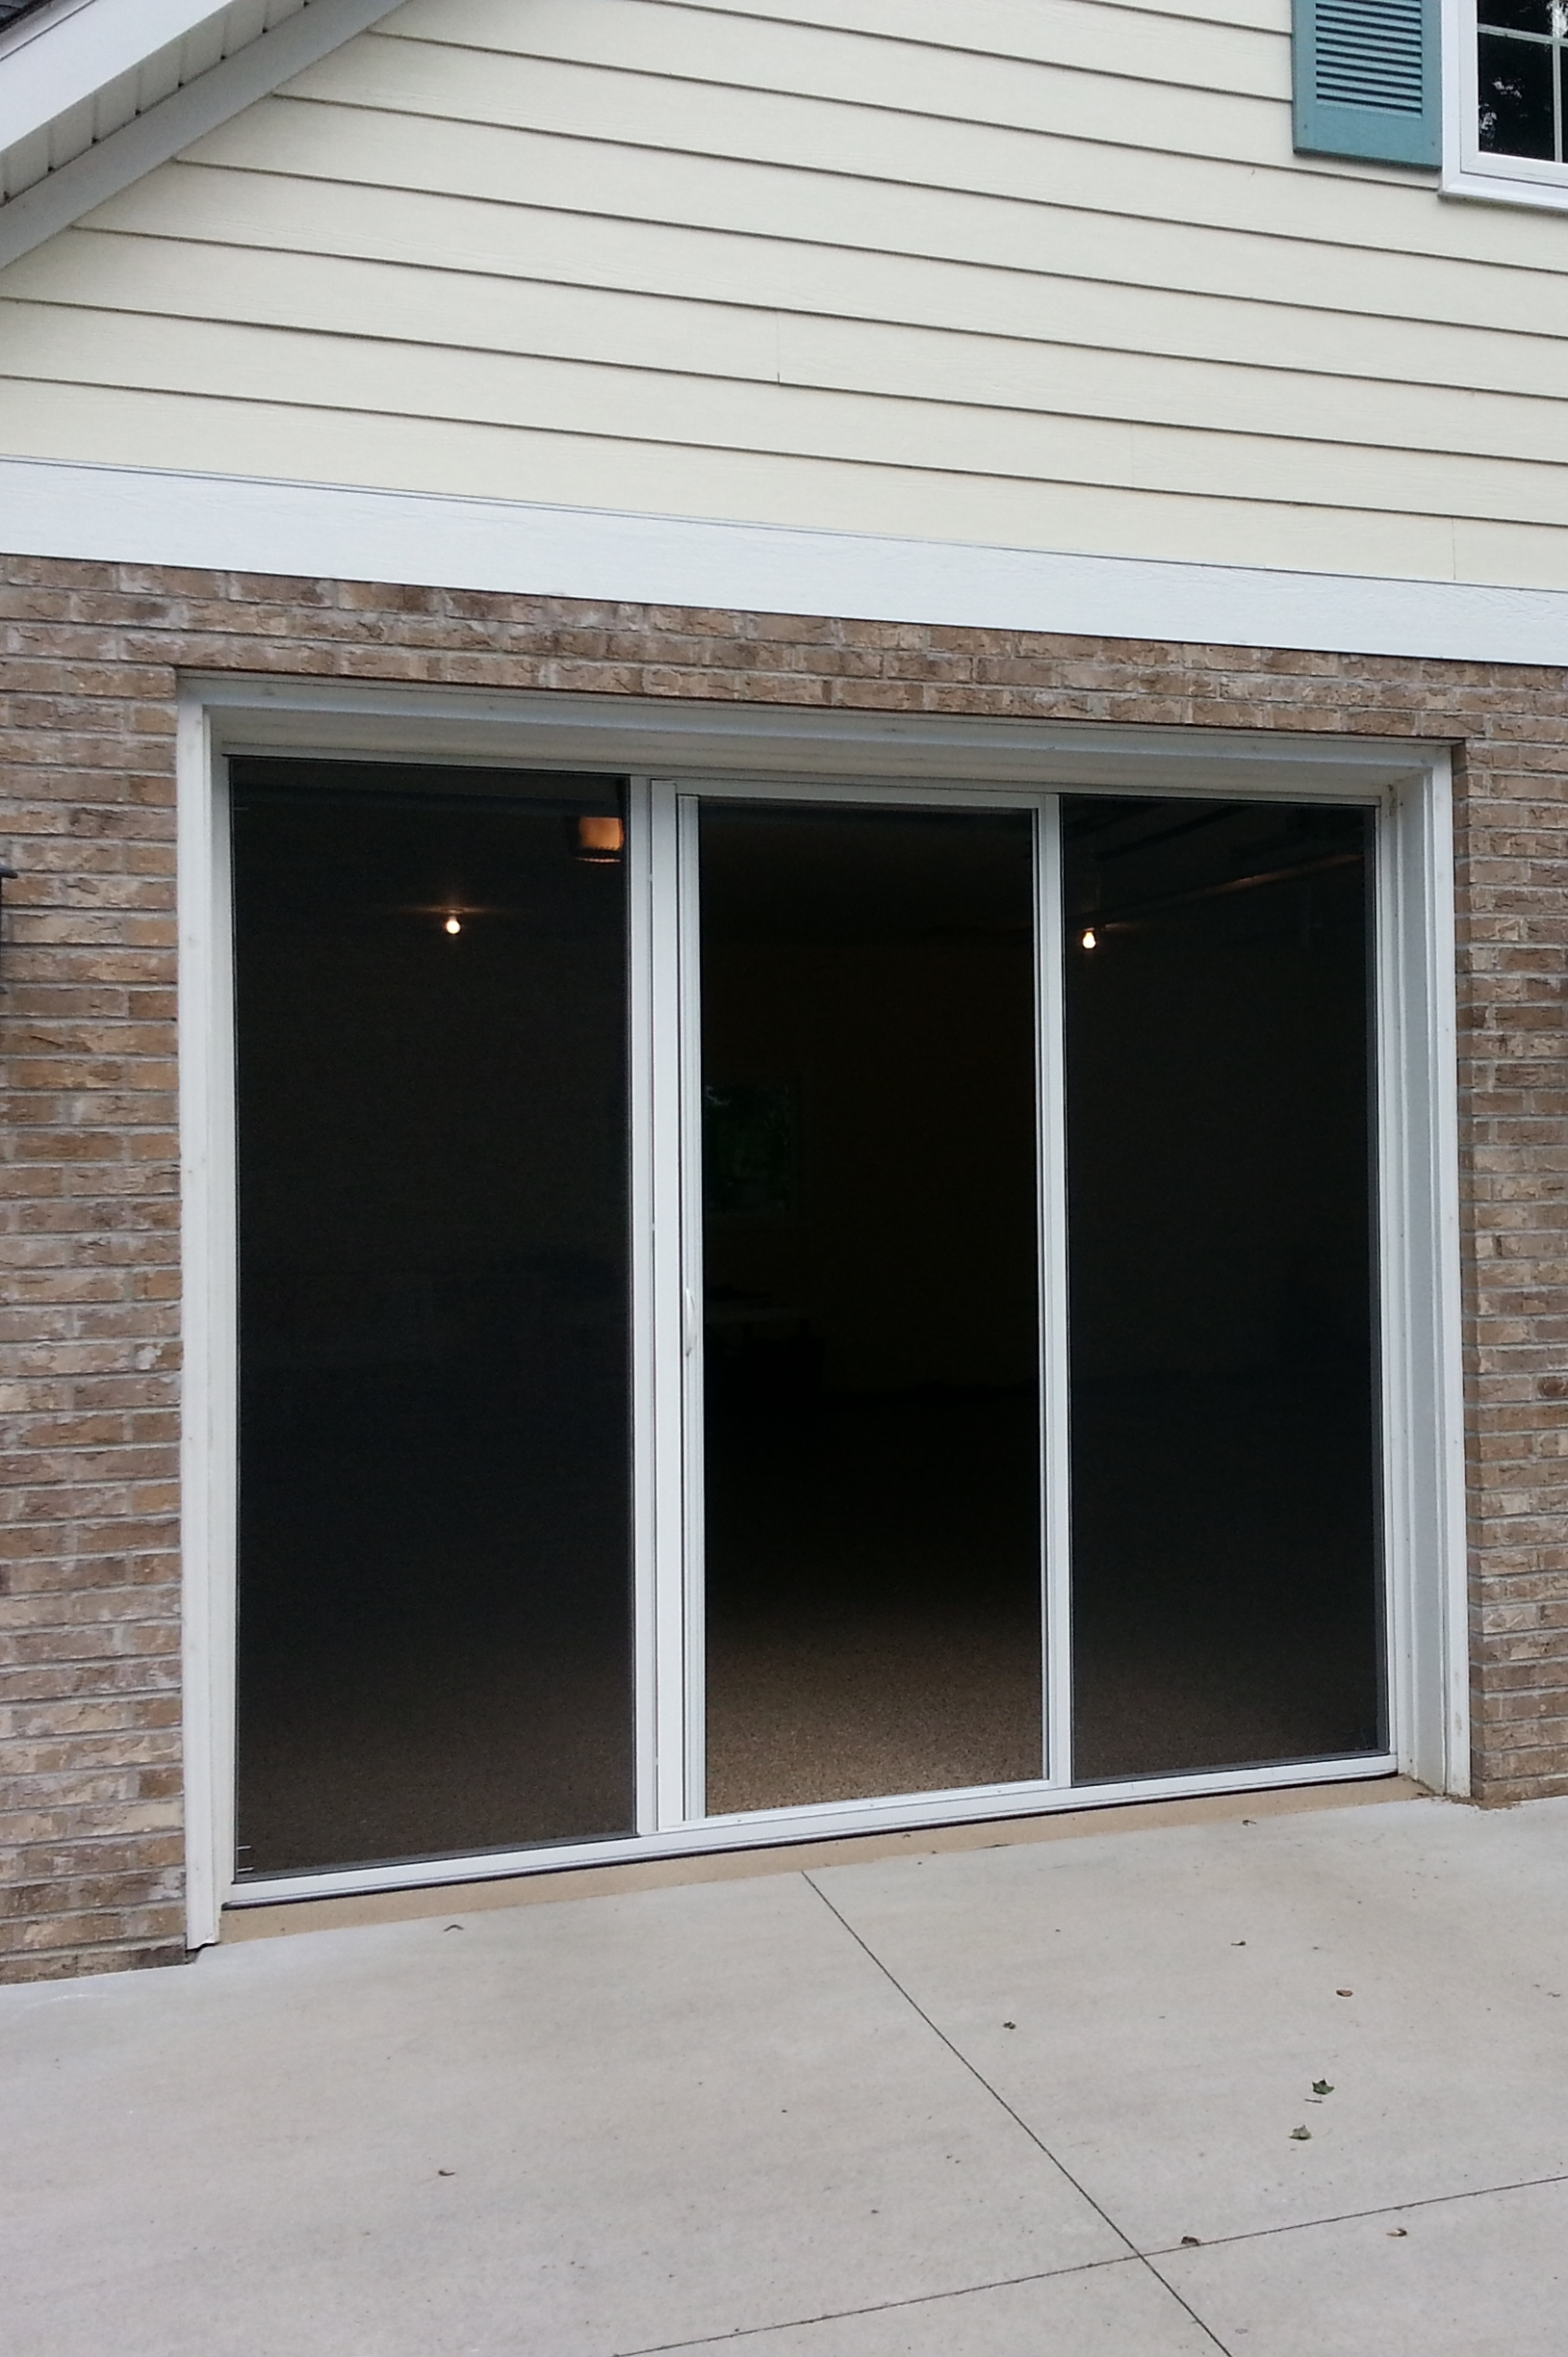 Merveilleux Screen For Single Car Garage